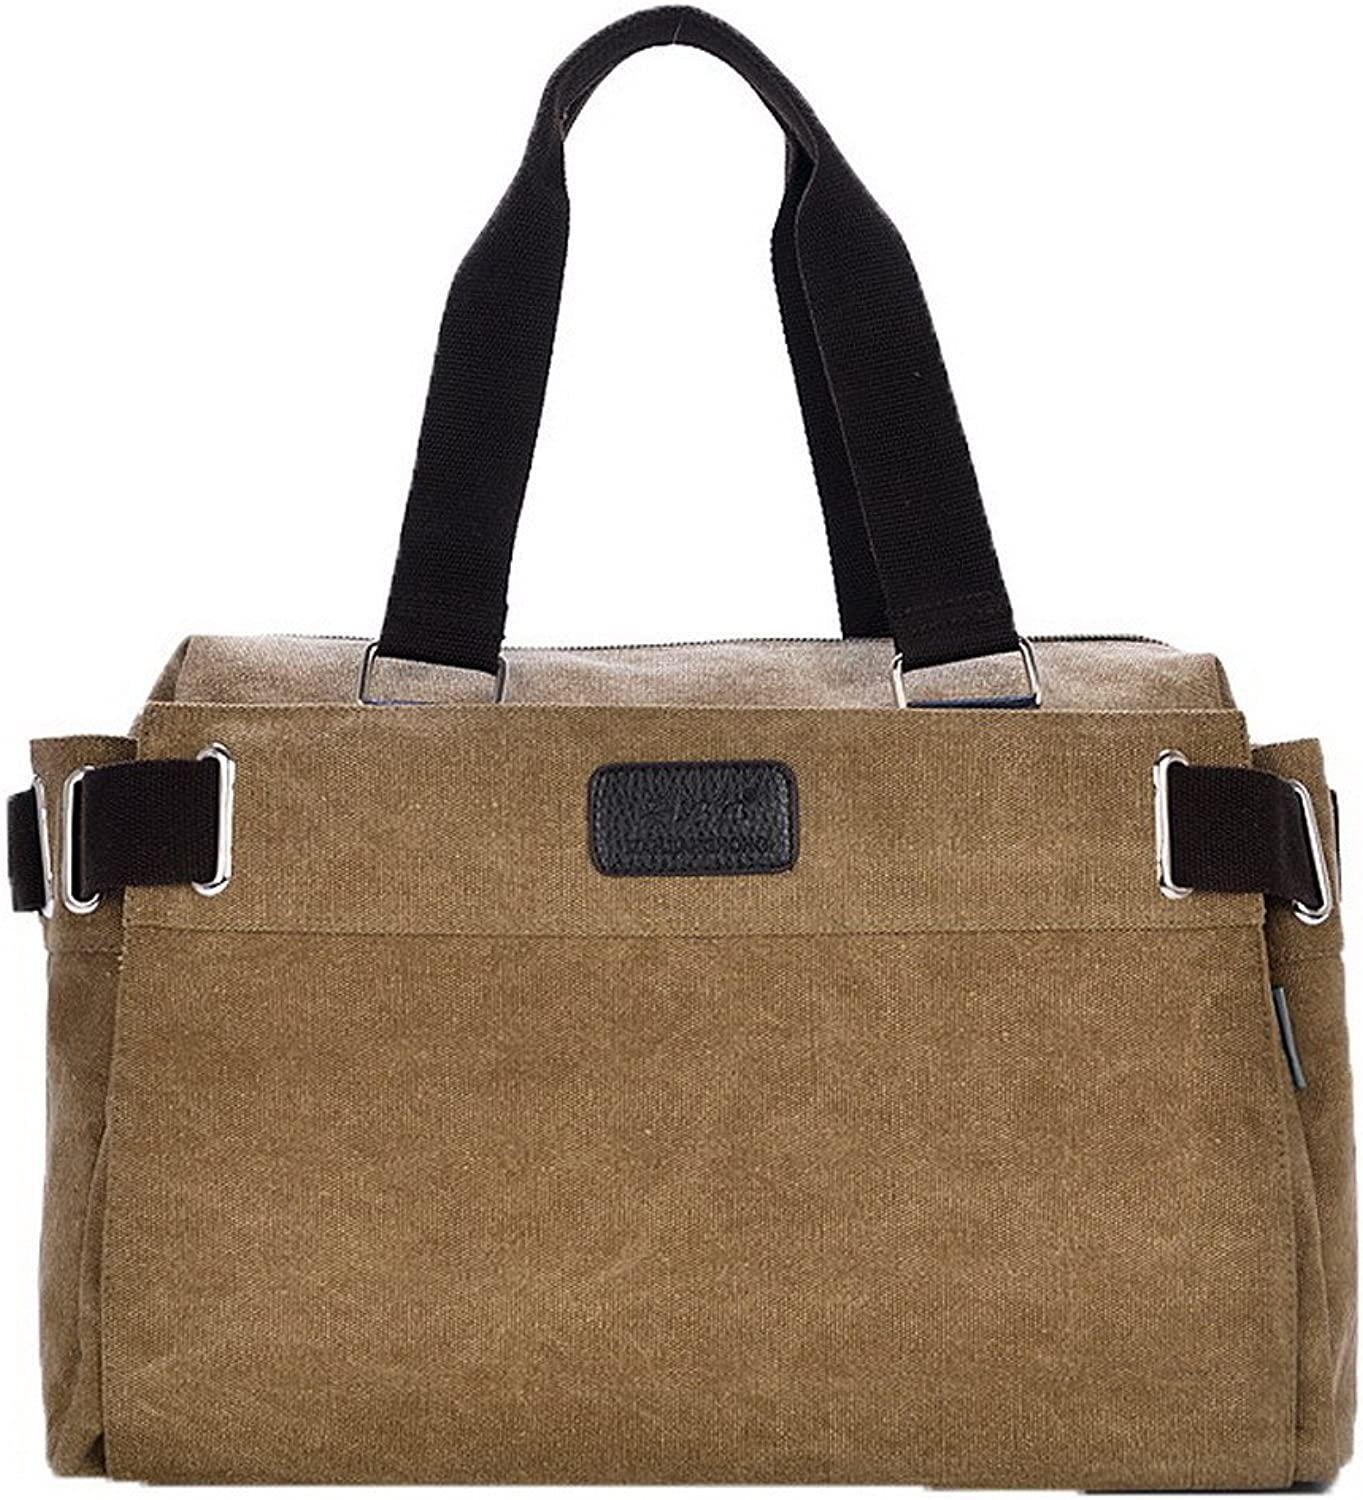 WeiPoot Women's Fashion Canvas Casual SatchelStyle Shoulder Bags, EGHBH181188